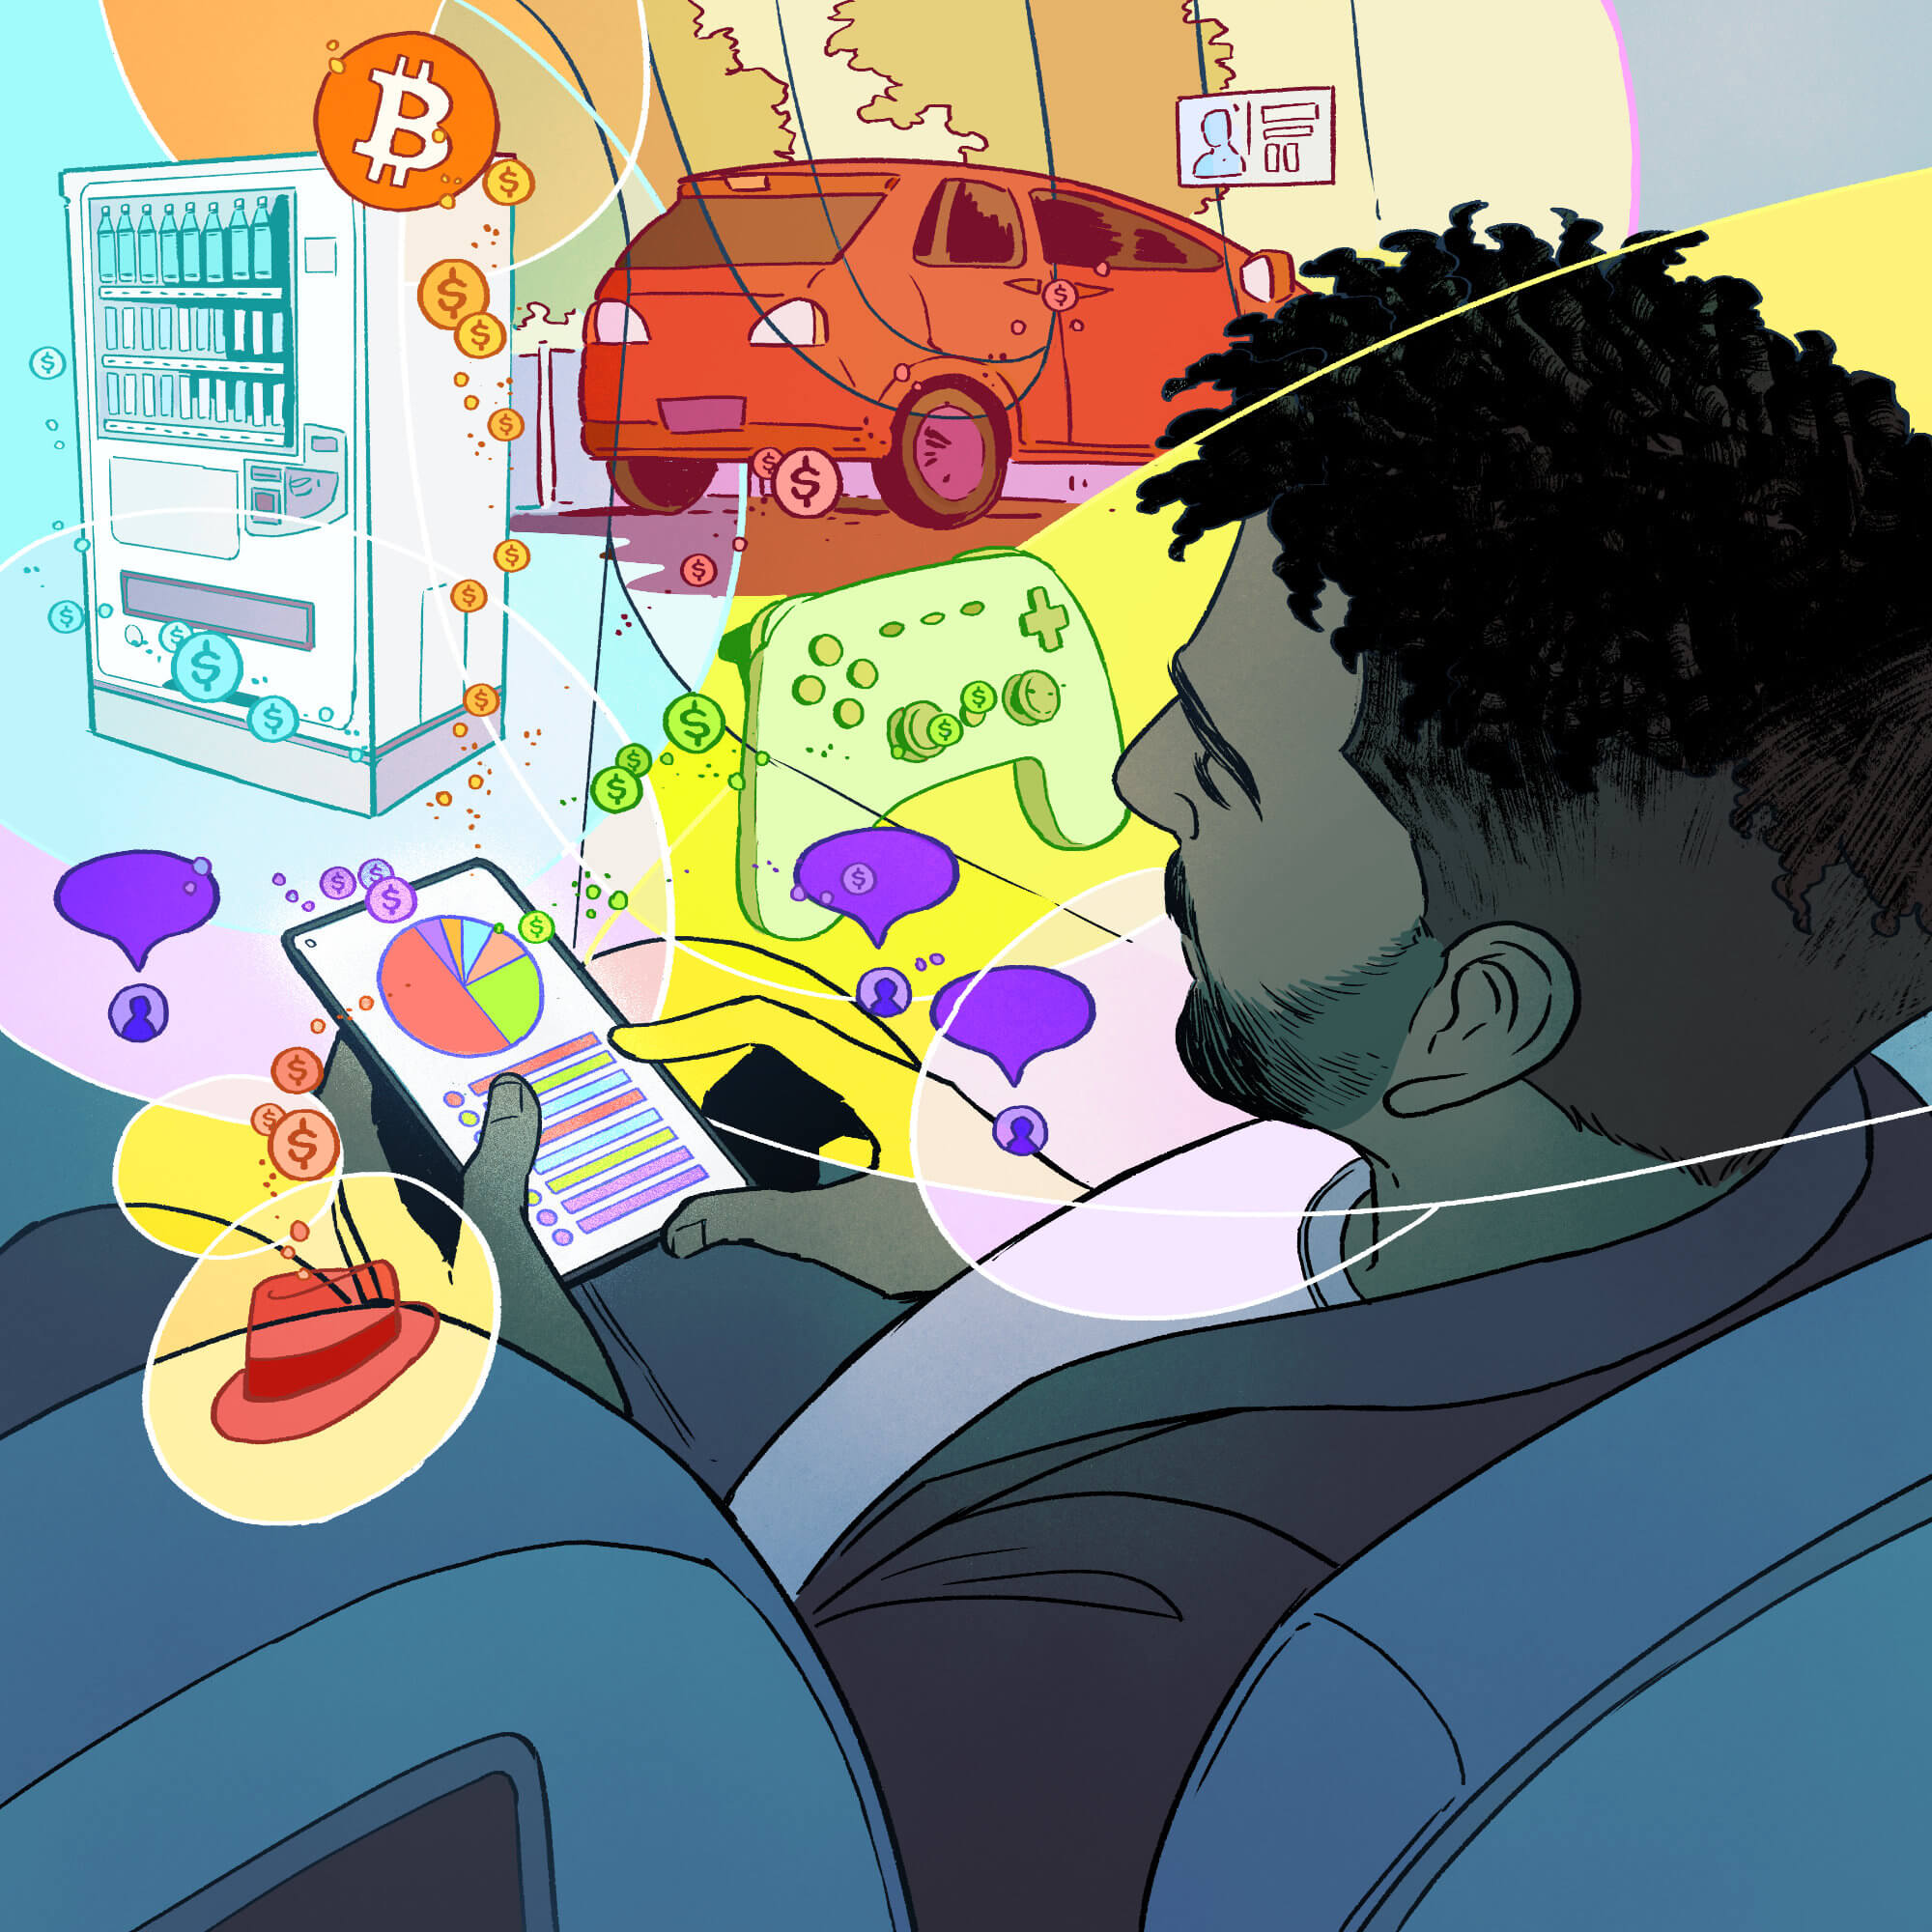 An illustration of a man in an airline seat, checking his phone while abstract bubbles float around showing his business earnings.